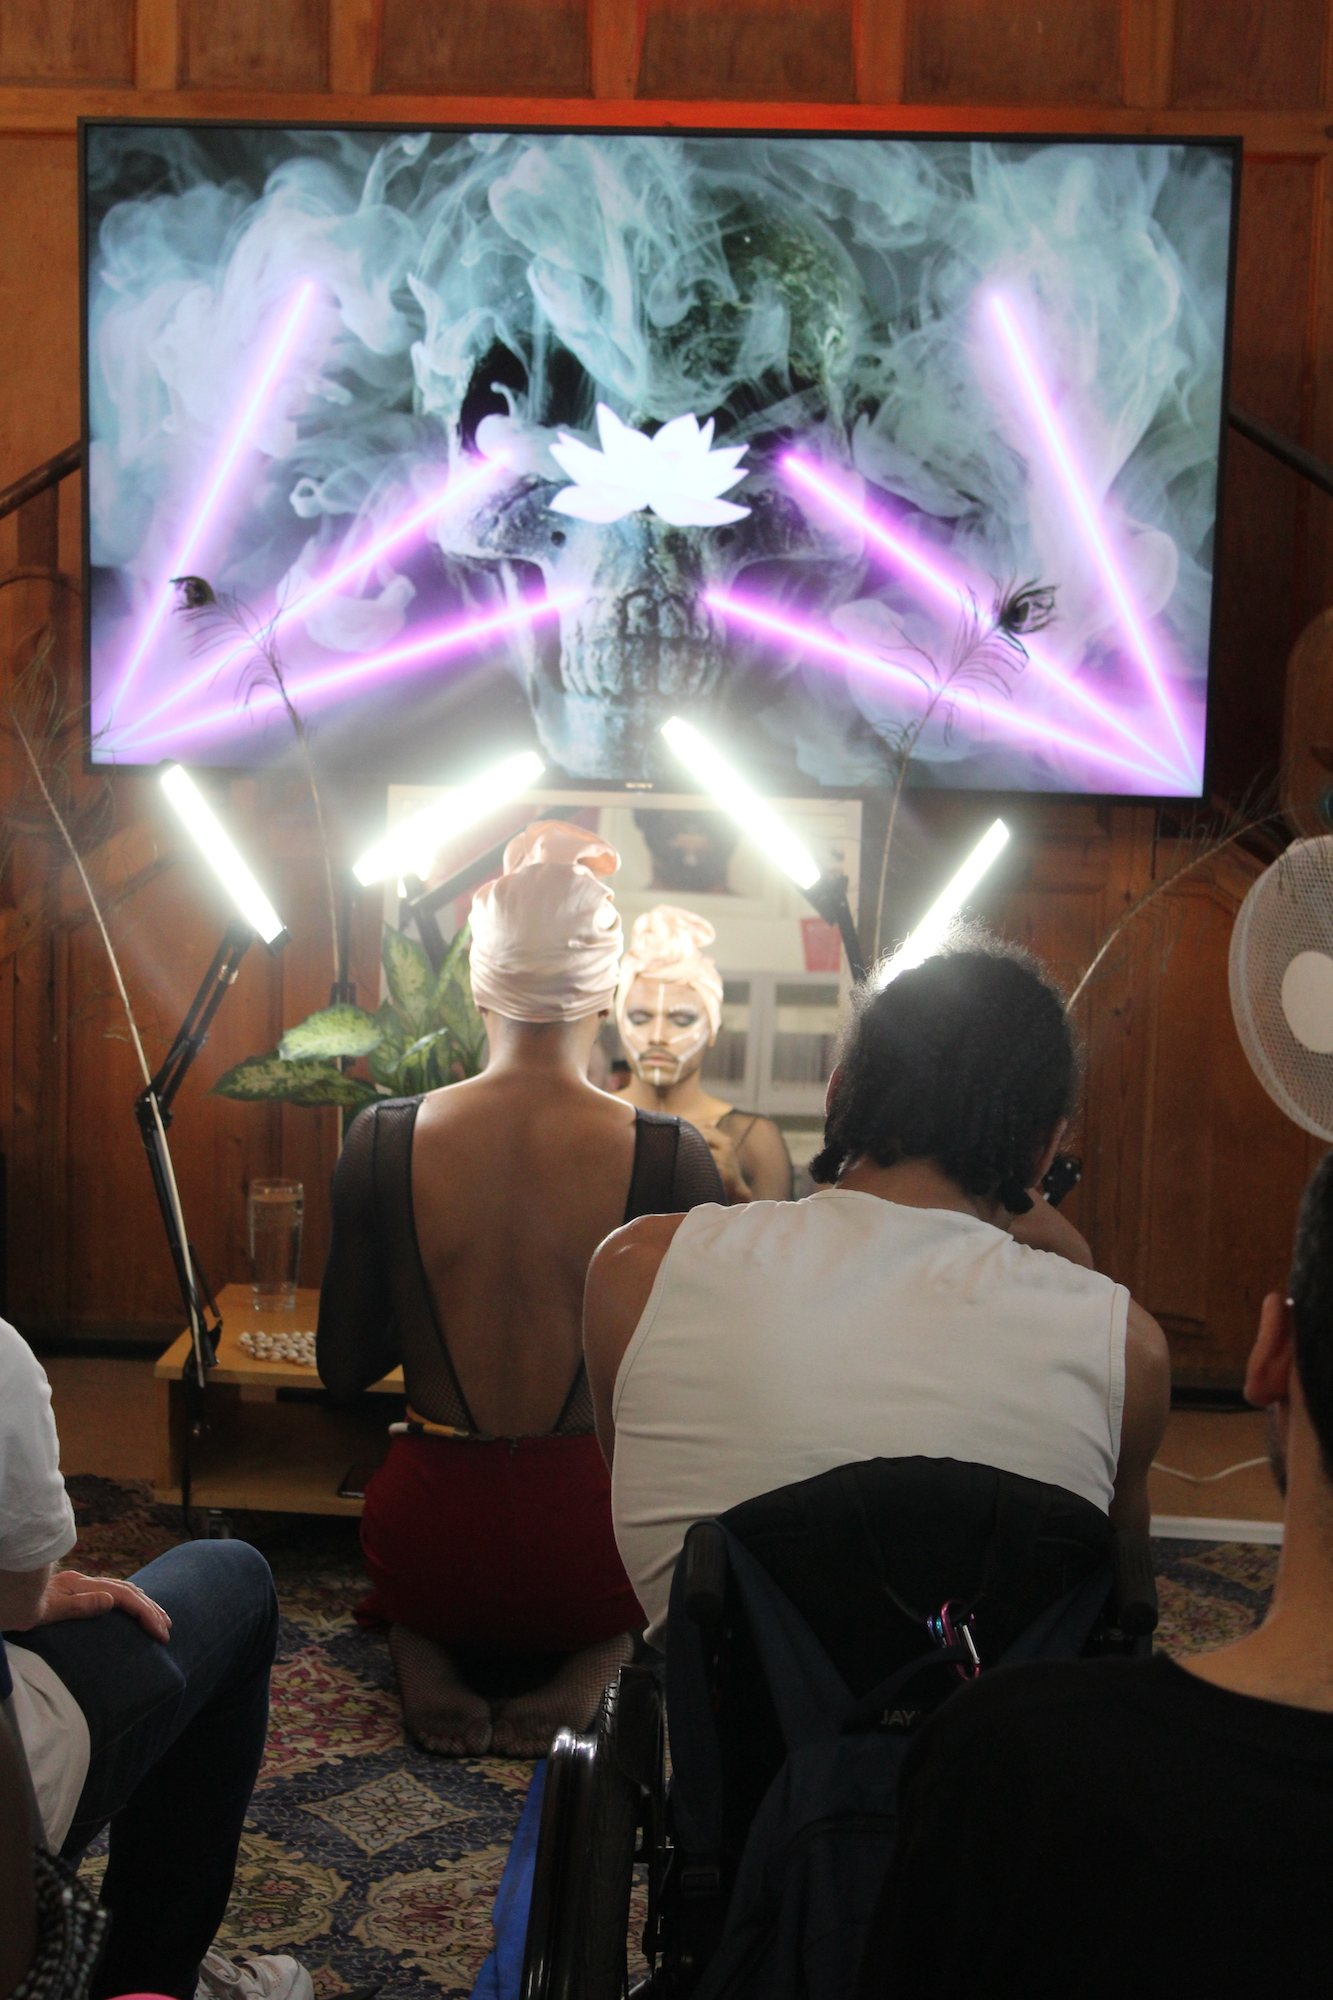 The artist applies their ritualistic makeup in front of a video.